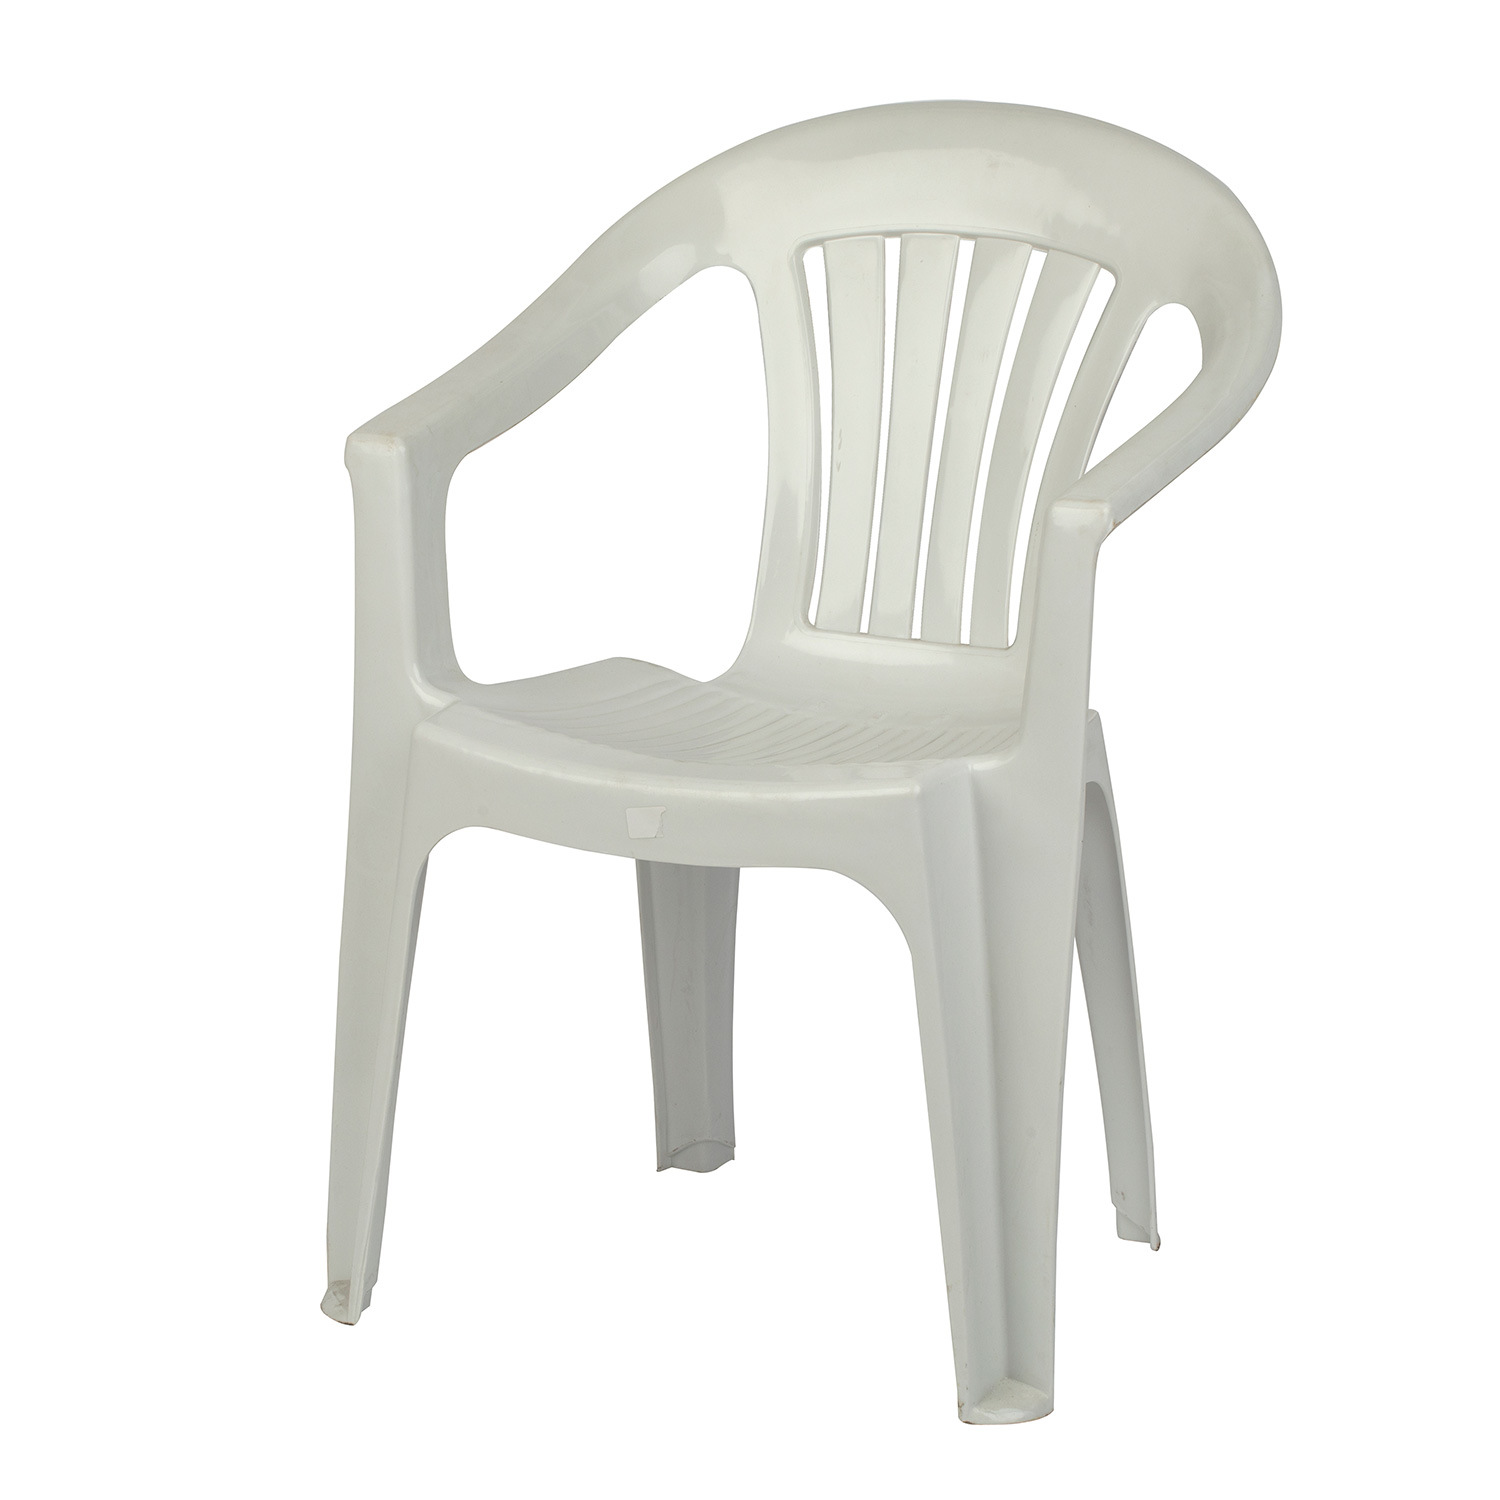 China Outdoor Plastic Chair Lawn Chairs